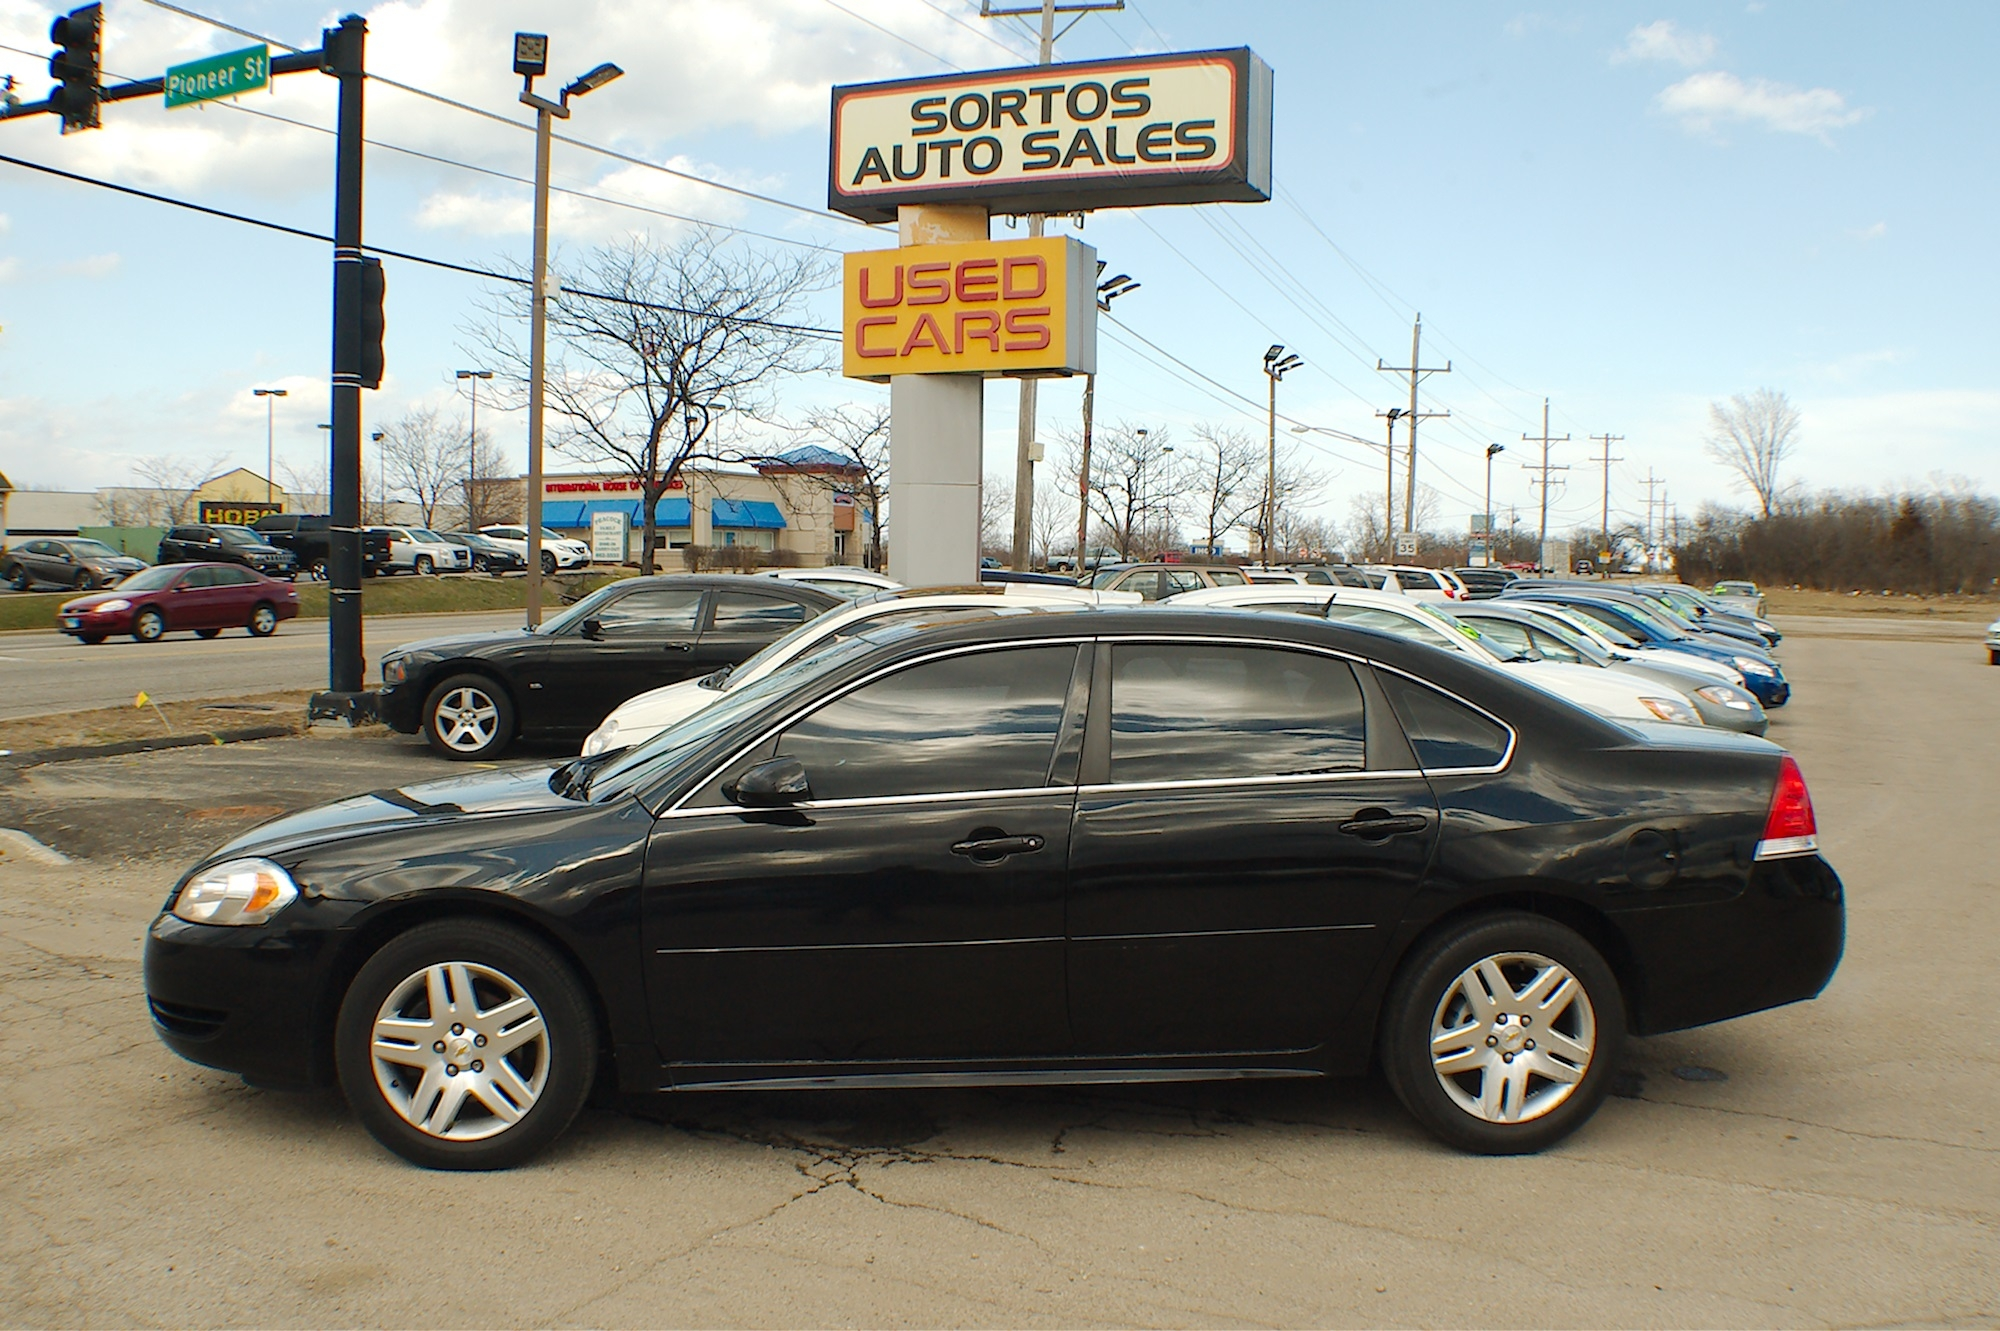 2012 Chevrolet Impala LT Black Flex Fuel Sedan Sale Antioch Zion Waukegan Lake County Illinois